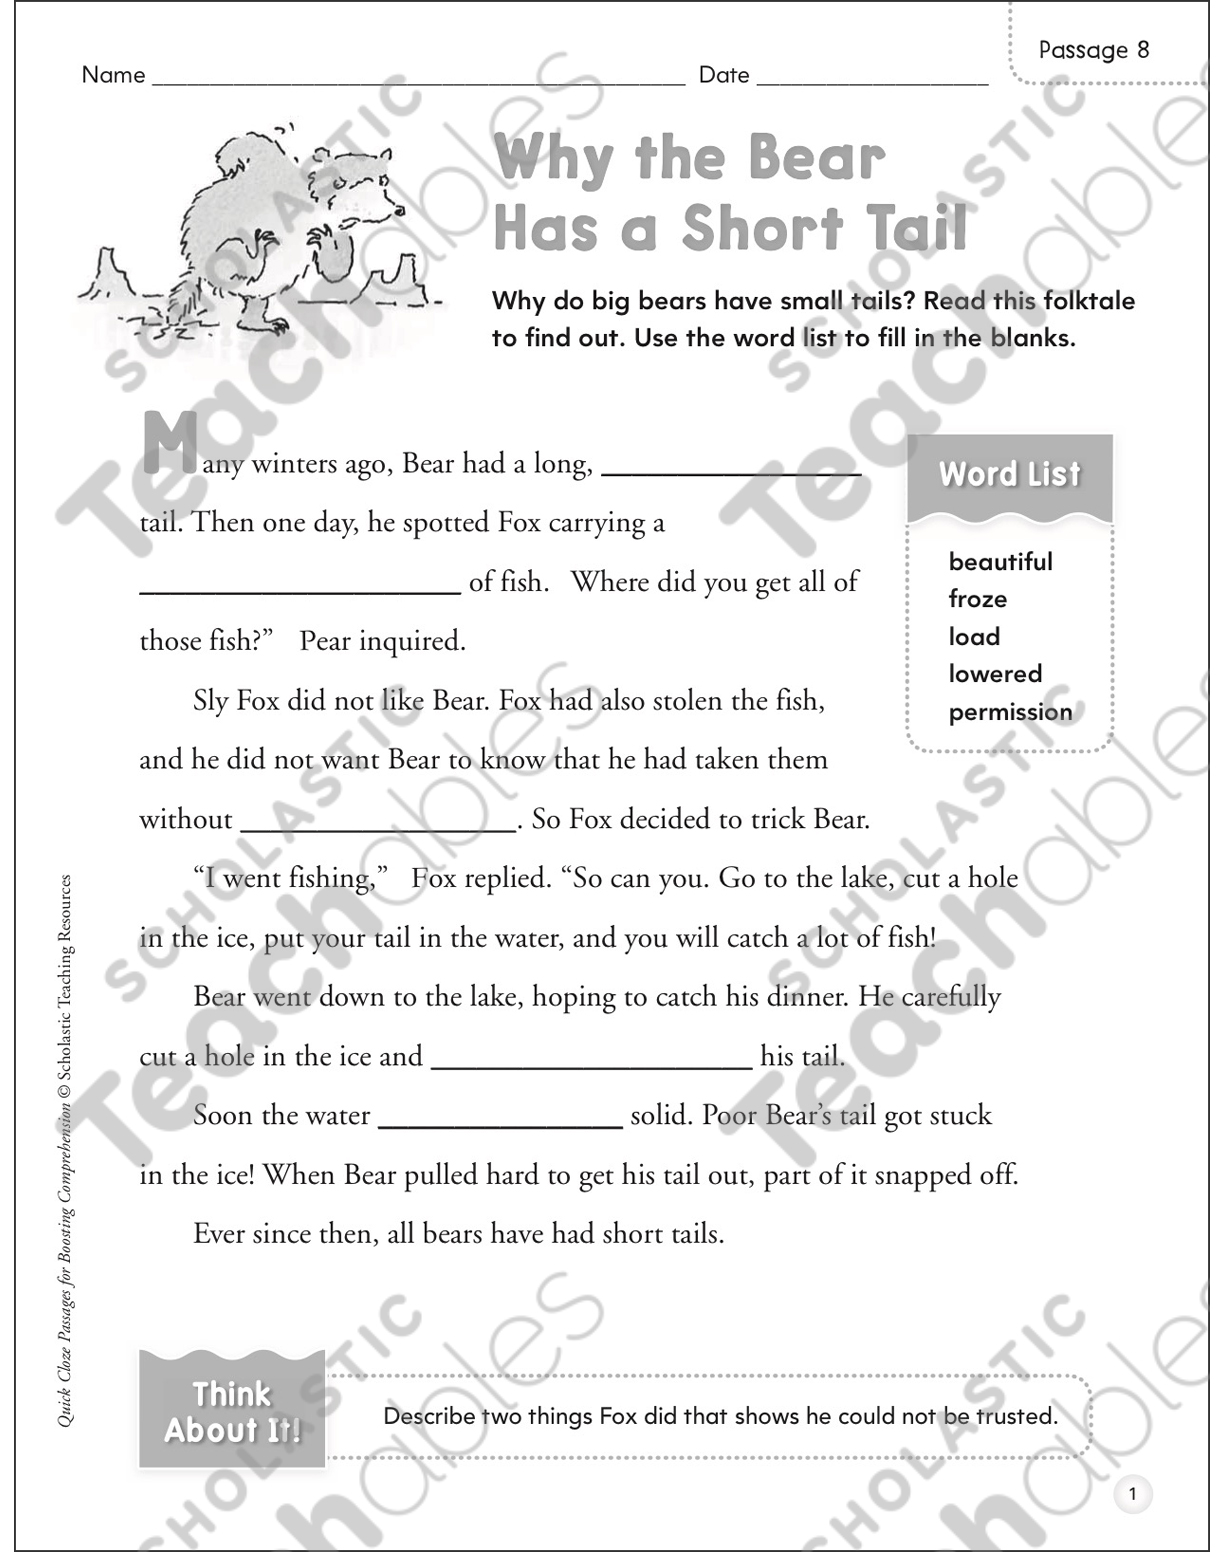 hight resolution of Why the Bear Has a Short Tail: Quick Cloze Passage   Printable Skills  Sheets